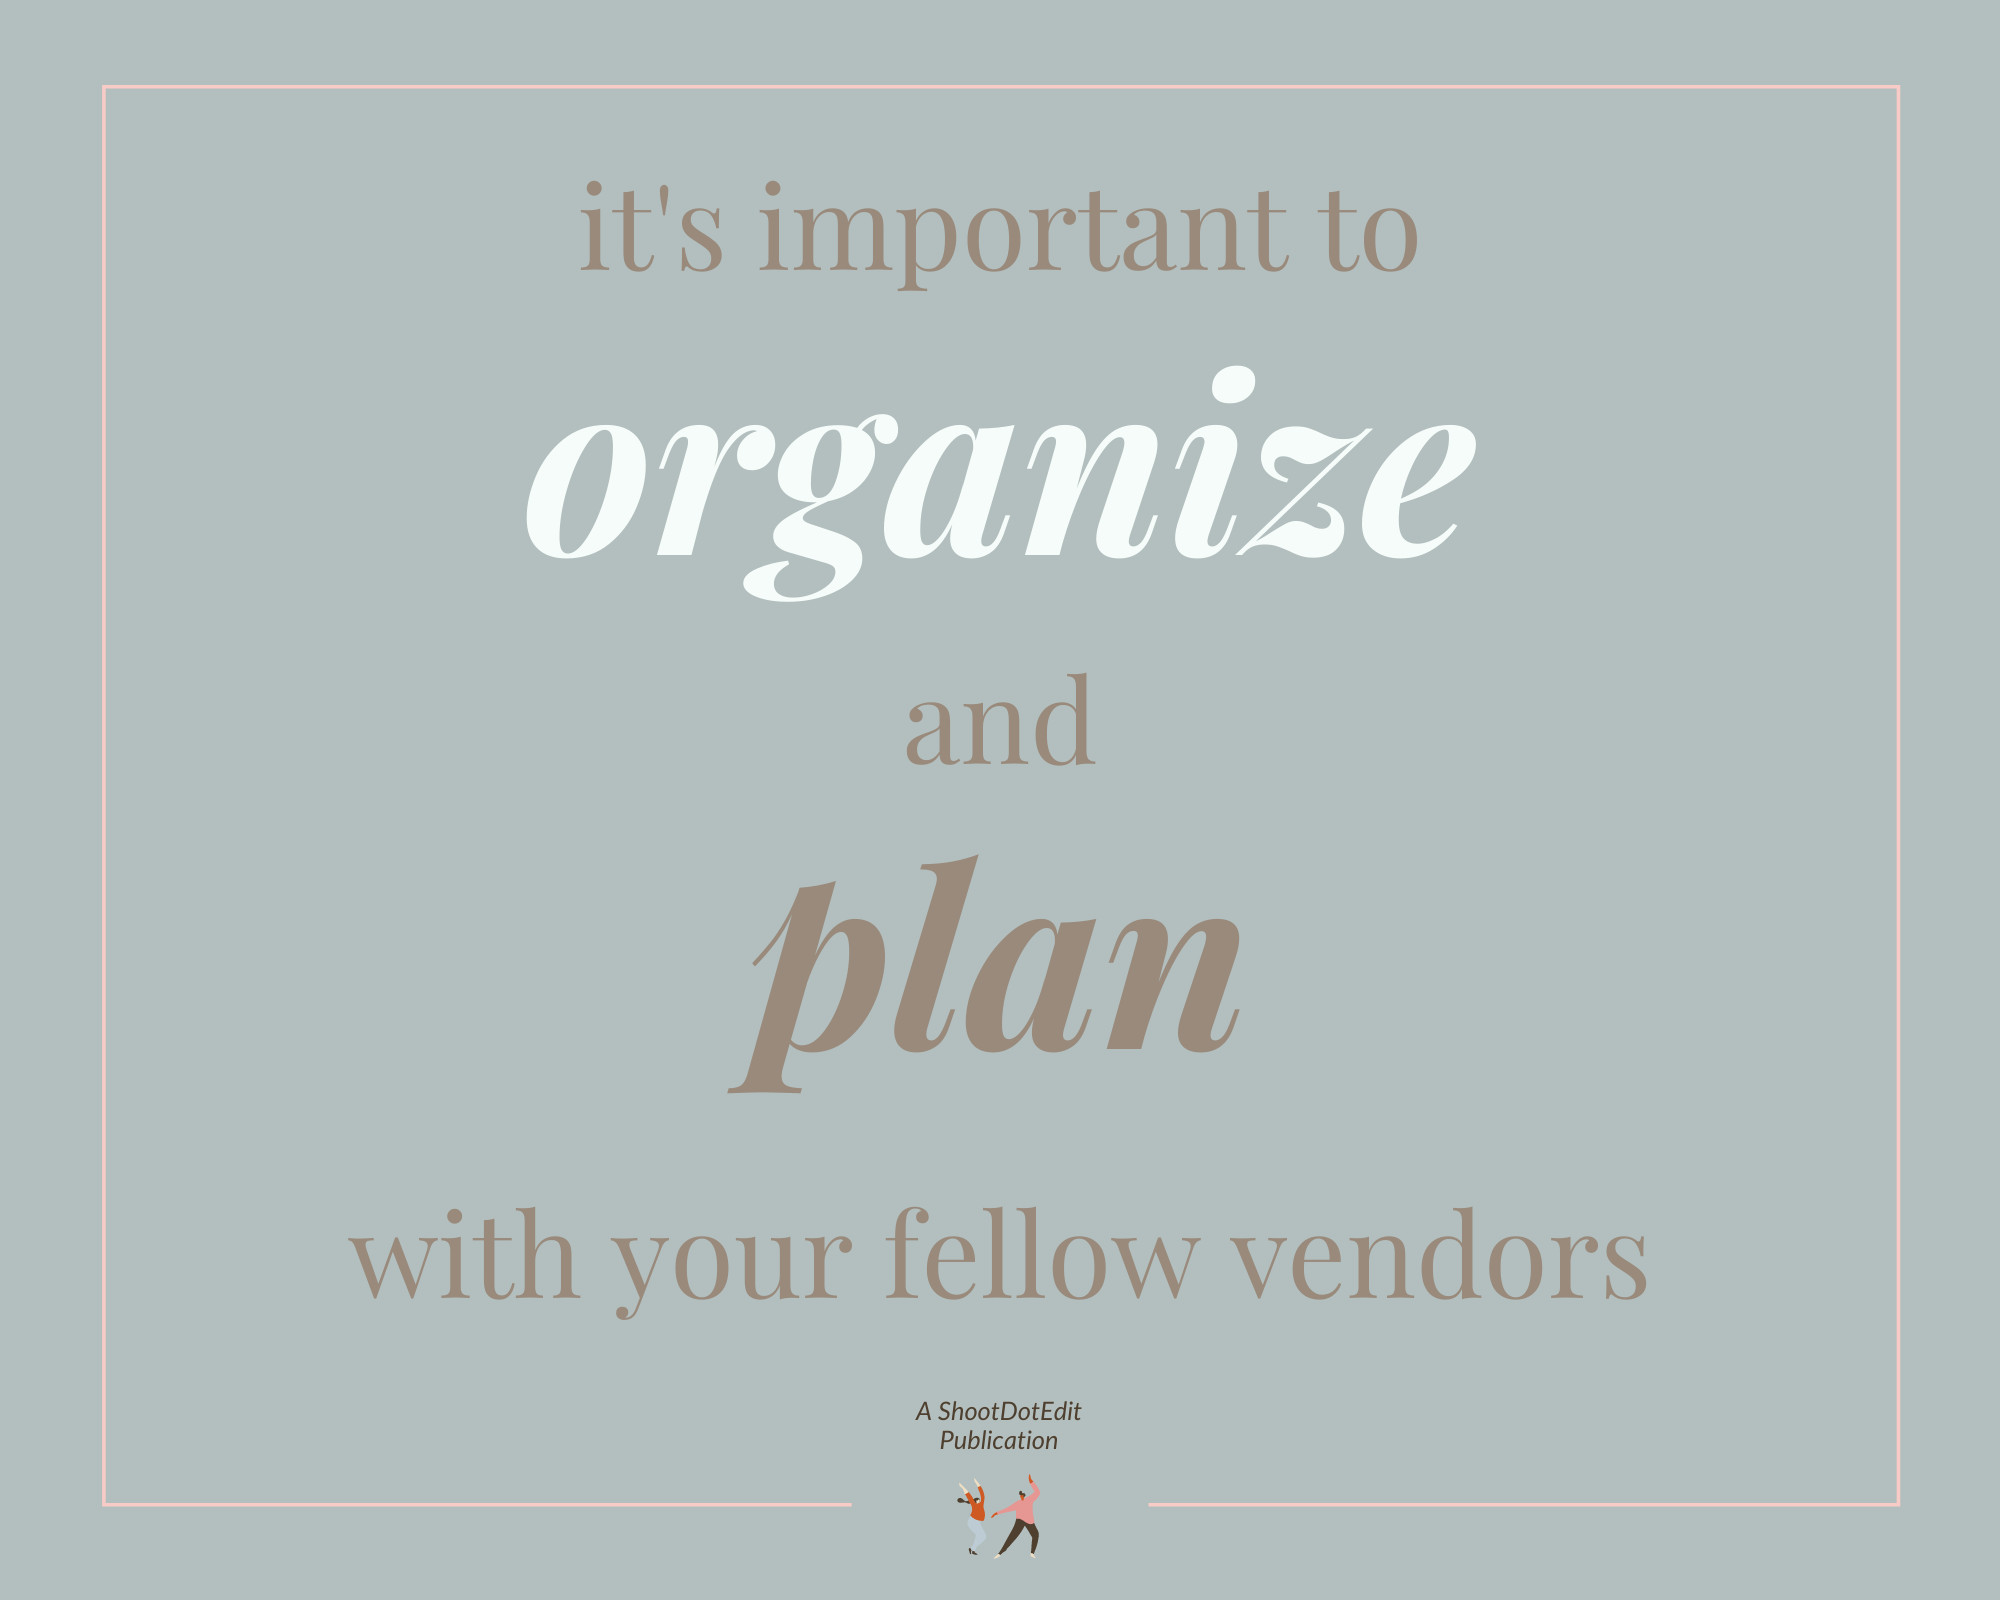 Infographic displaying - it's important to organize and plan with your fellow vendors